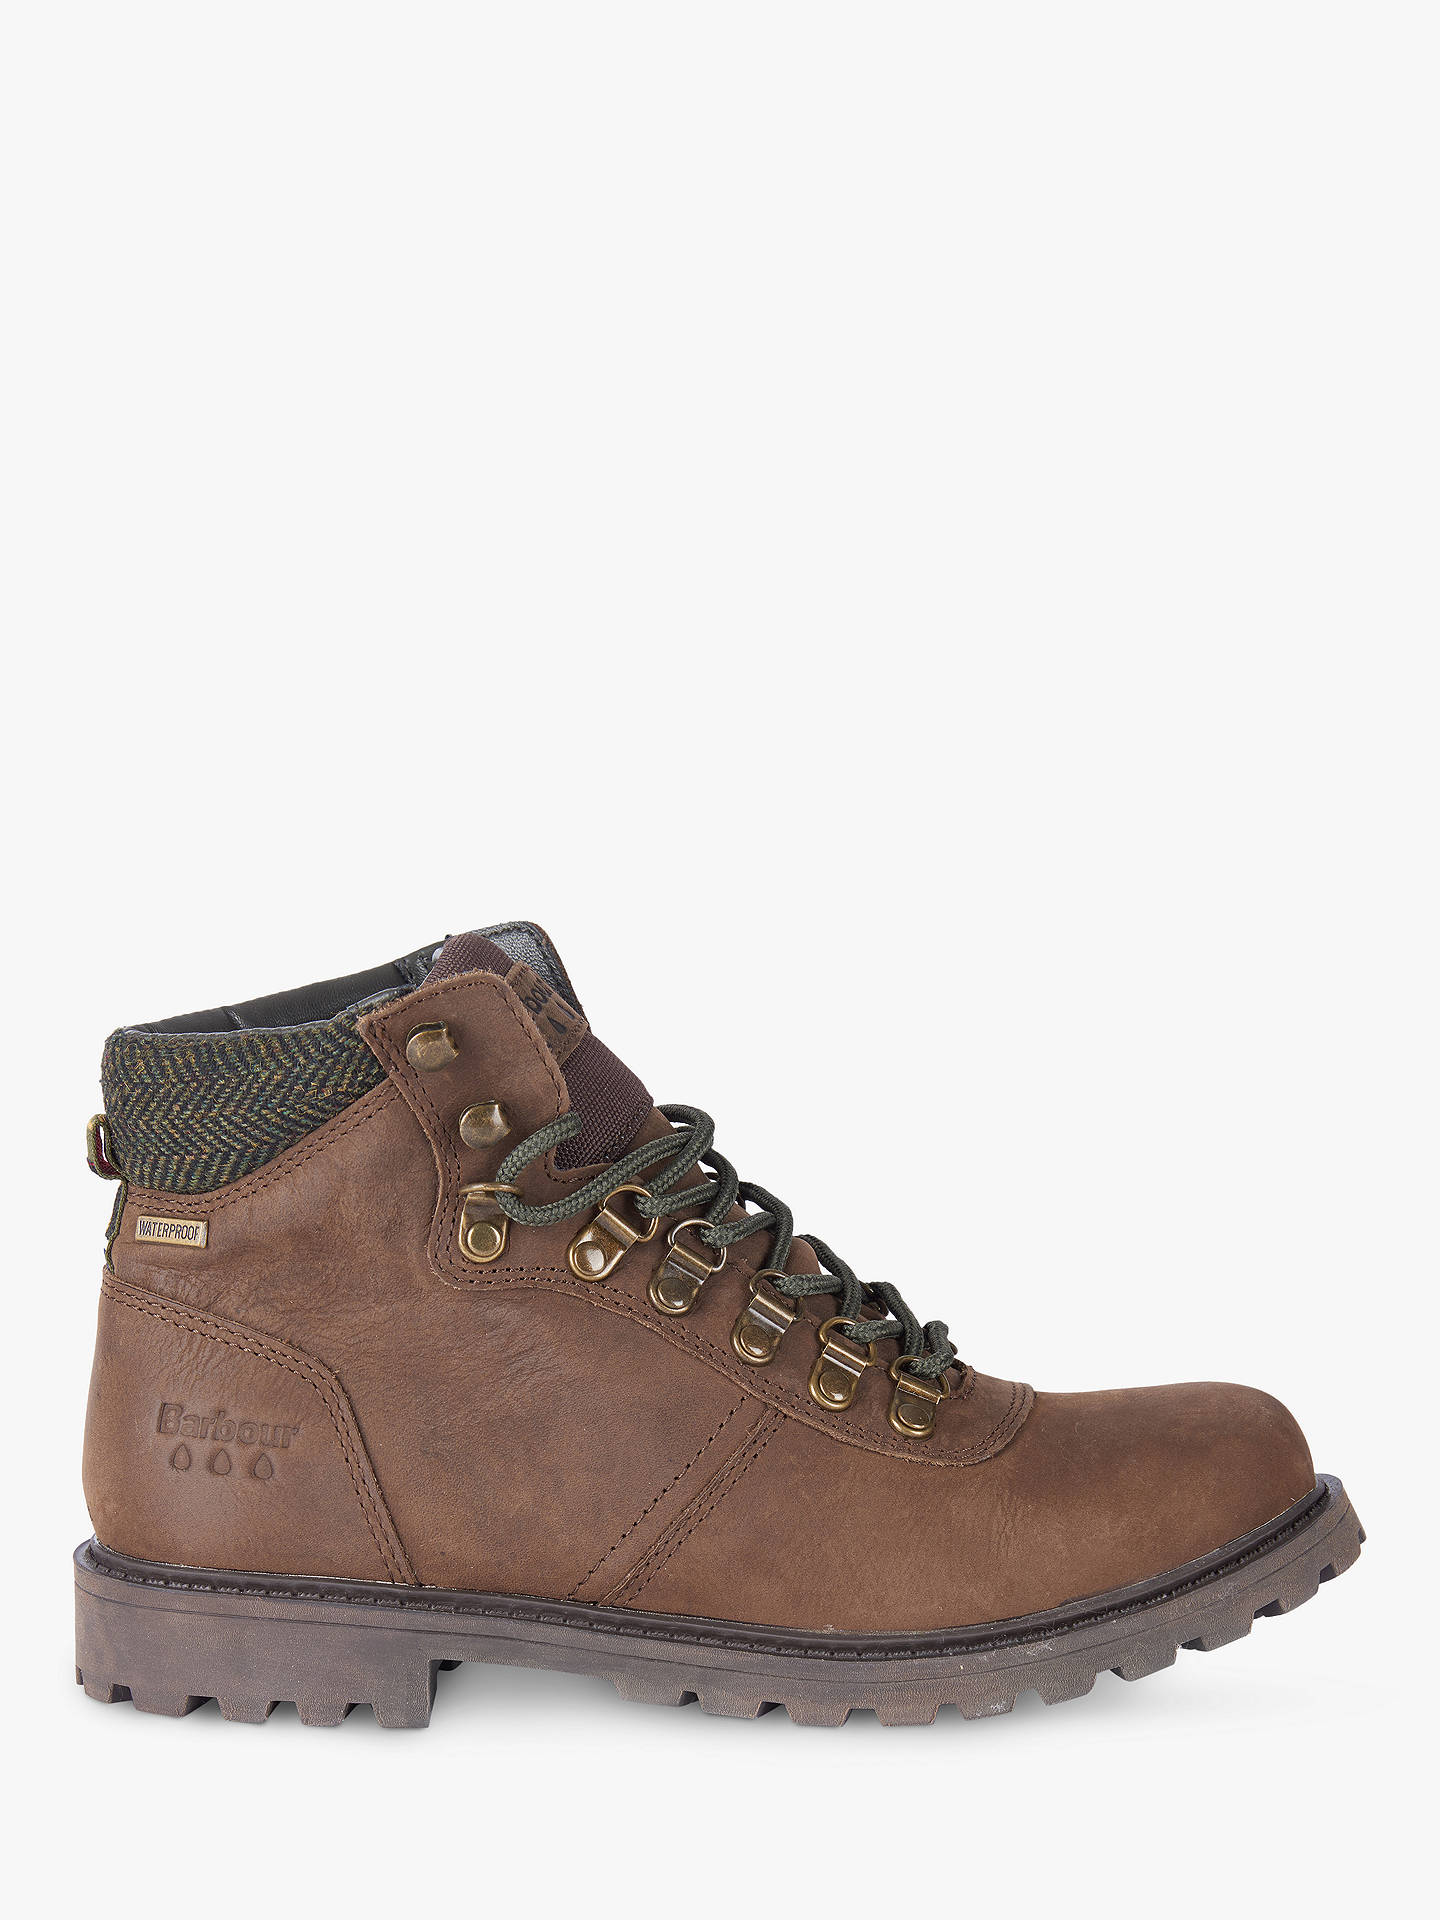 Buy Barbour Elsdon Waterproof Leather Hiker Boots, Brown, 7 Online at johnlewis.com